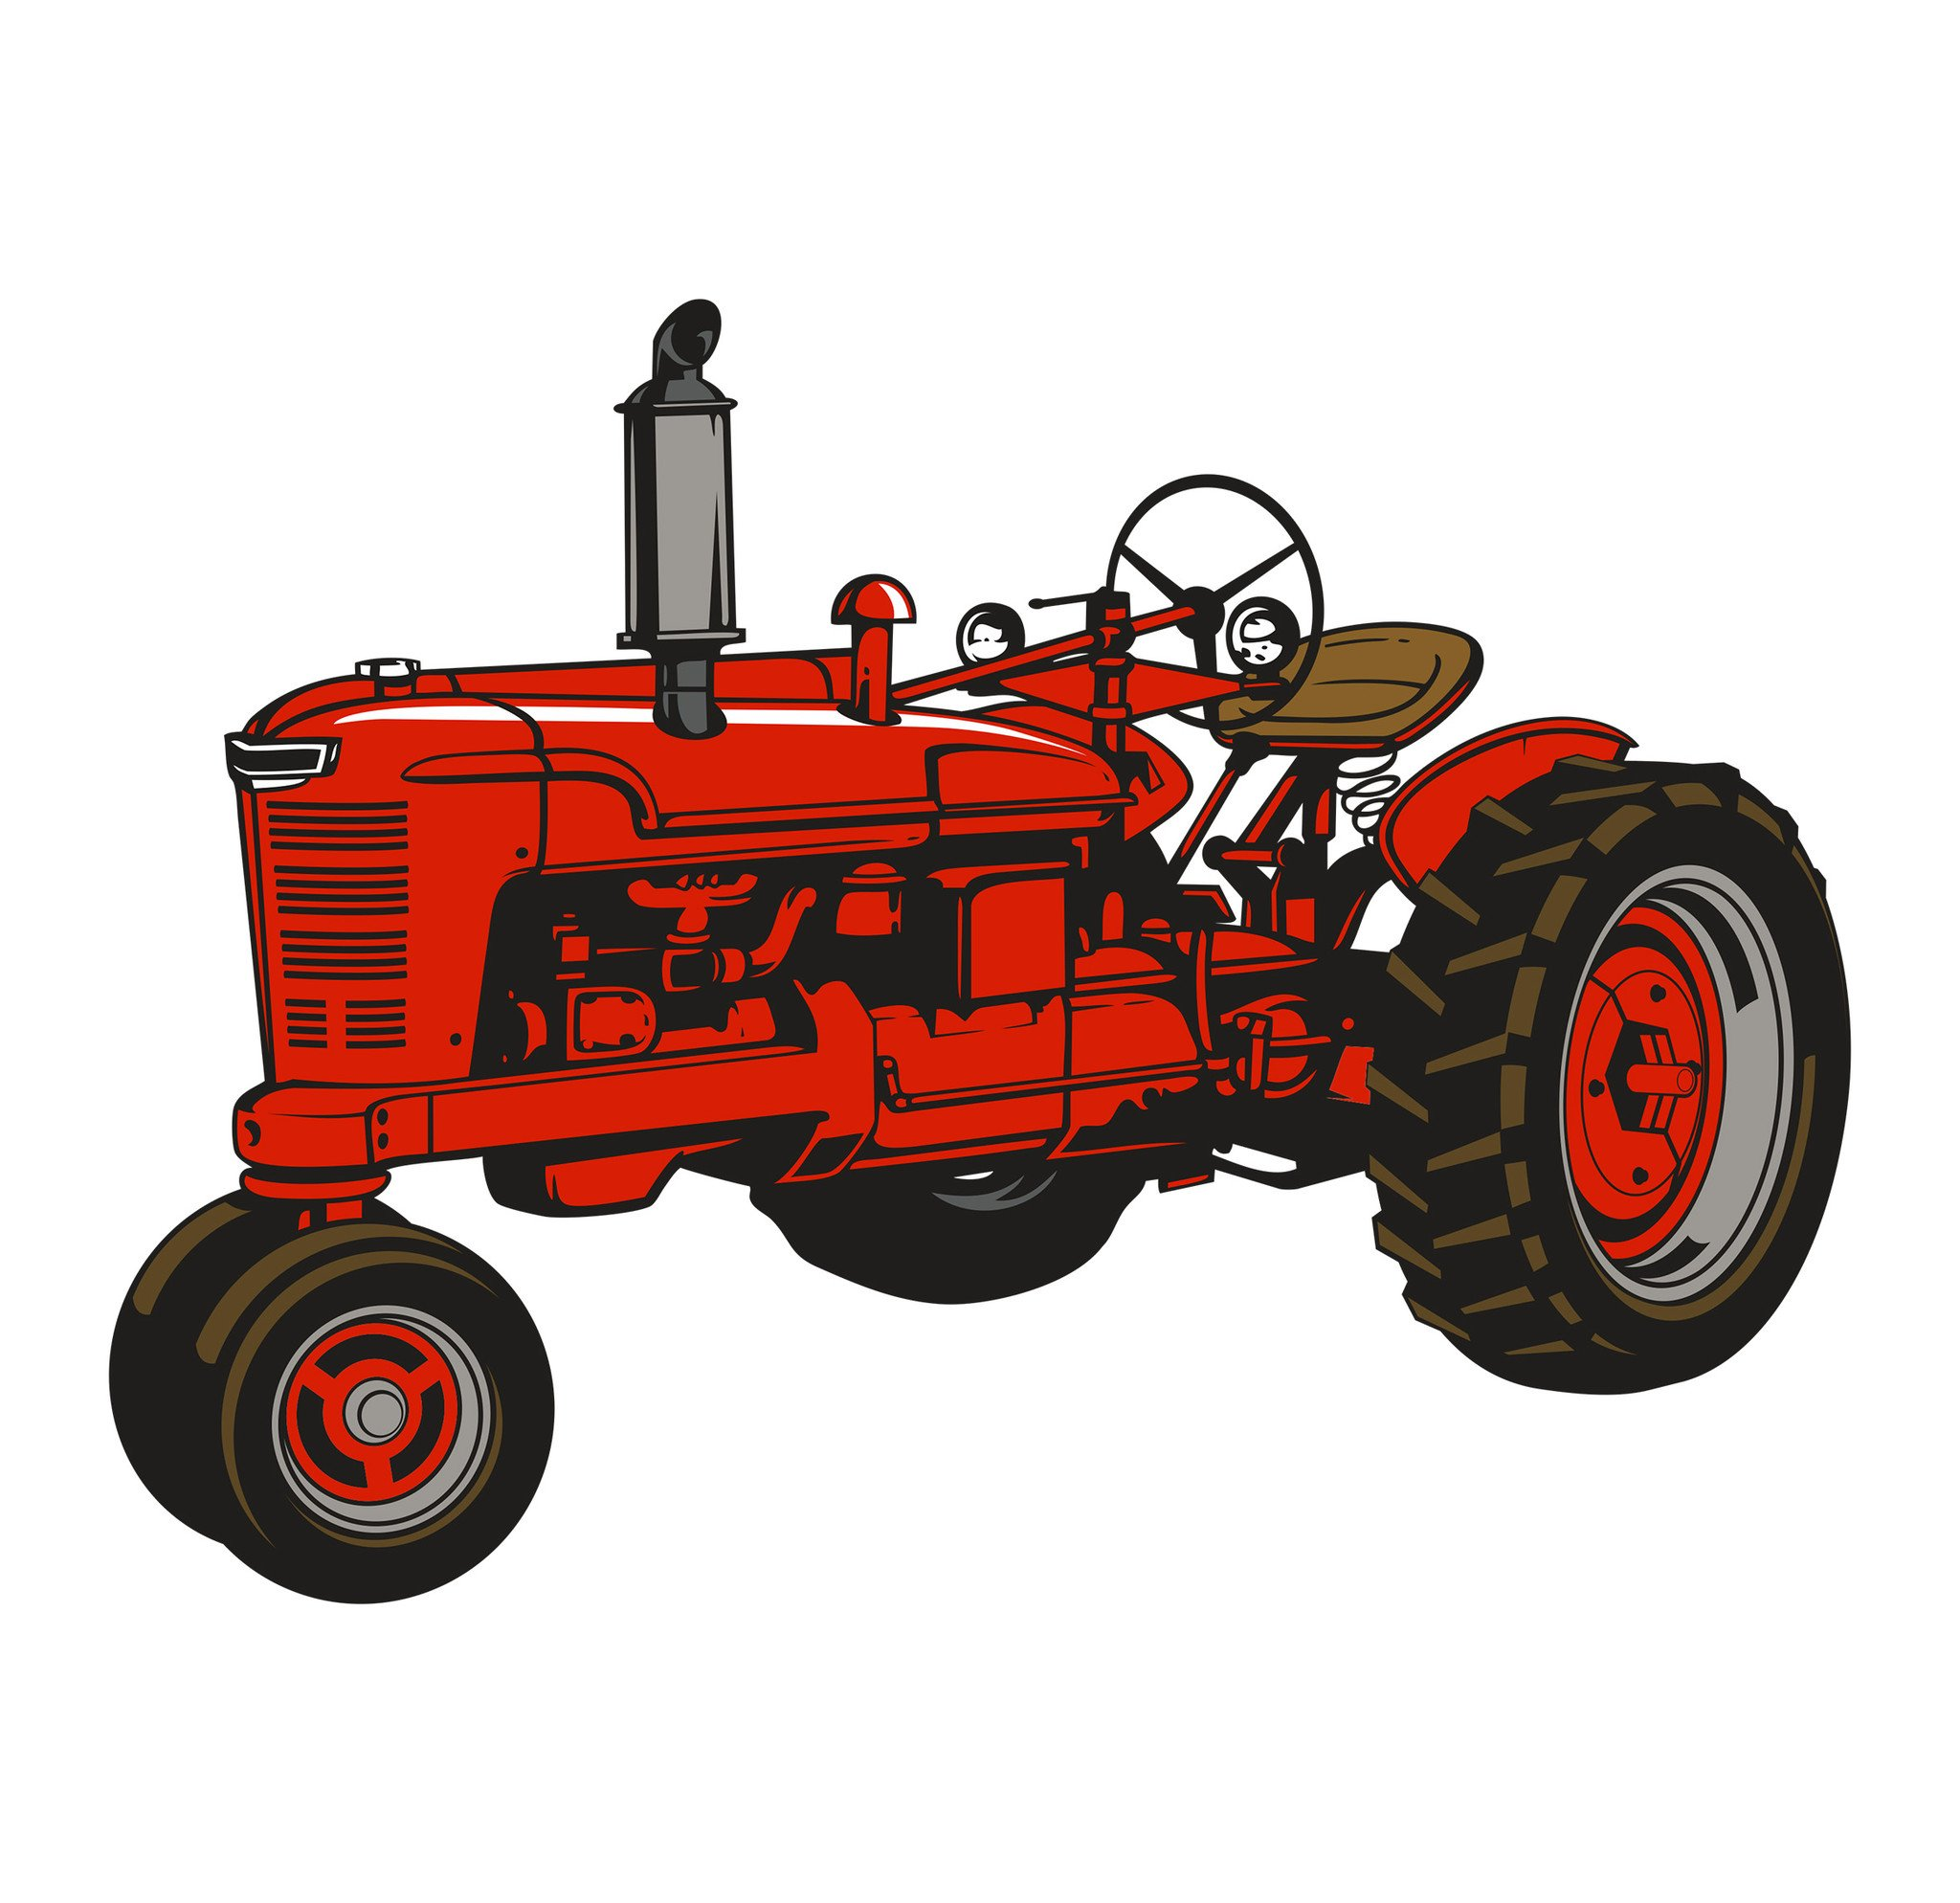 2048x1988 Old Farmall Tractor Decal M H Let's Print Big